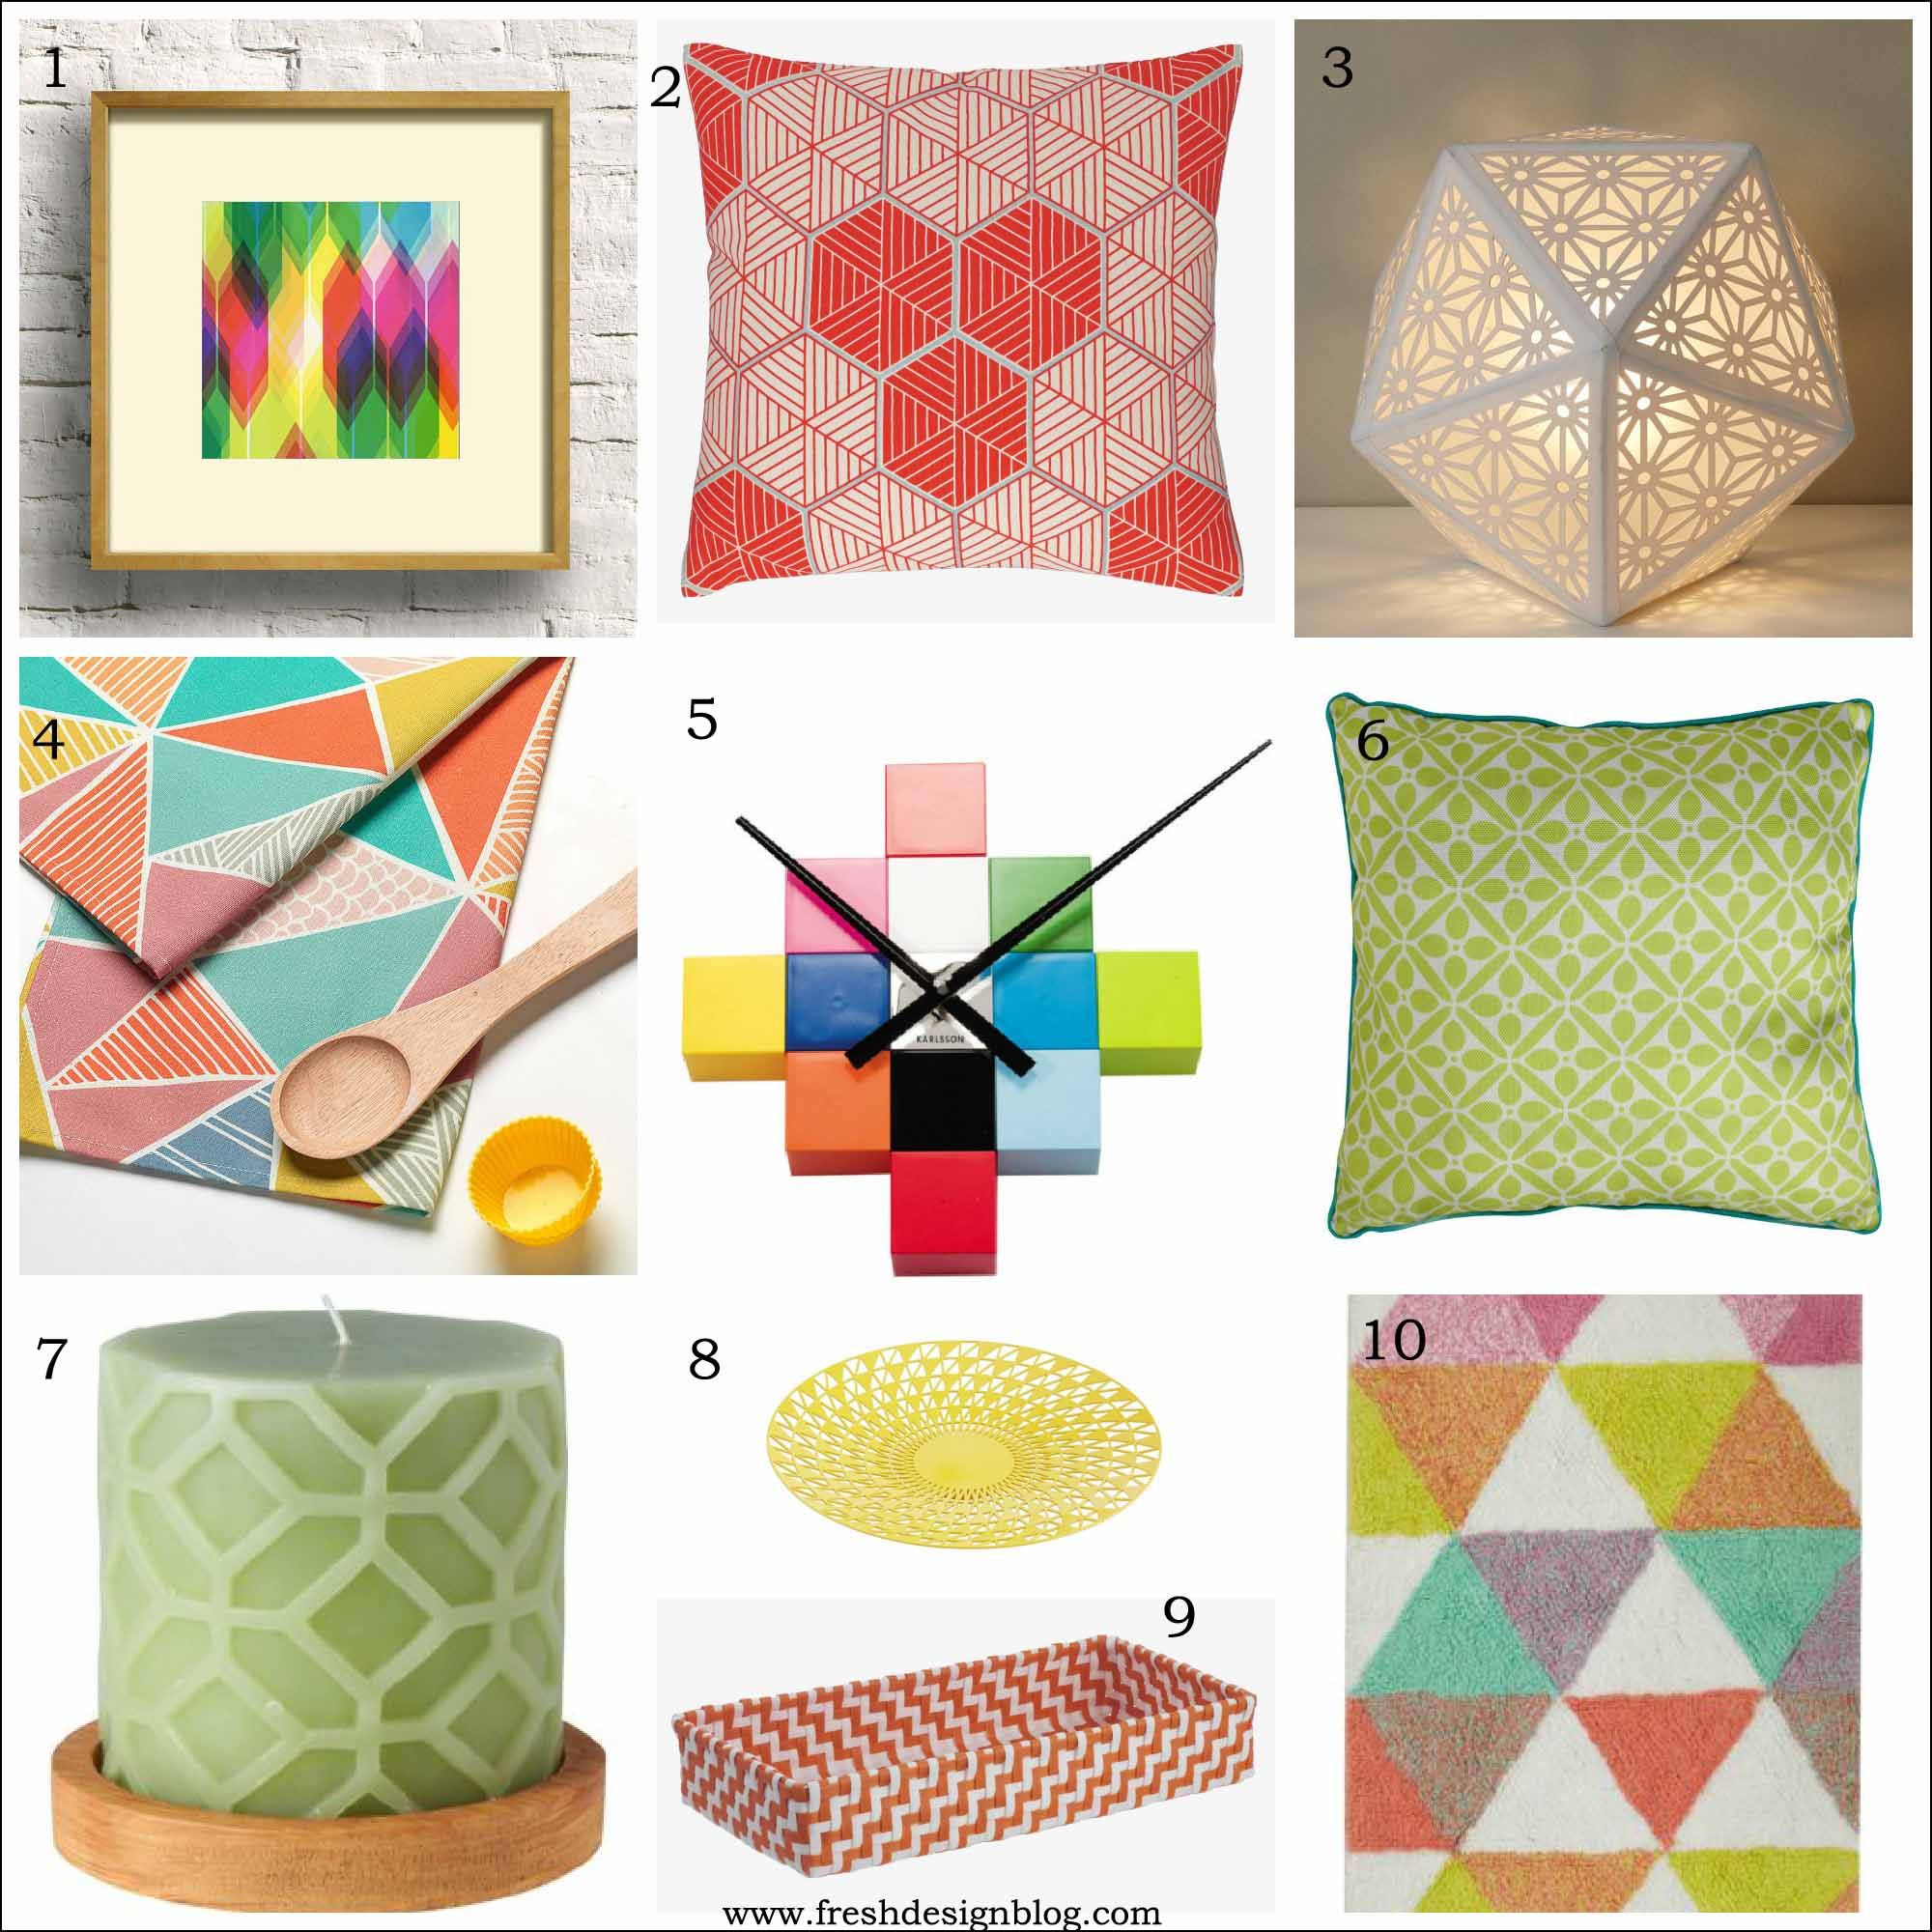 Most wanted high street hunter spring 2013 geometric home for Fresh design blog